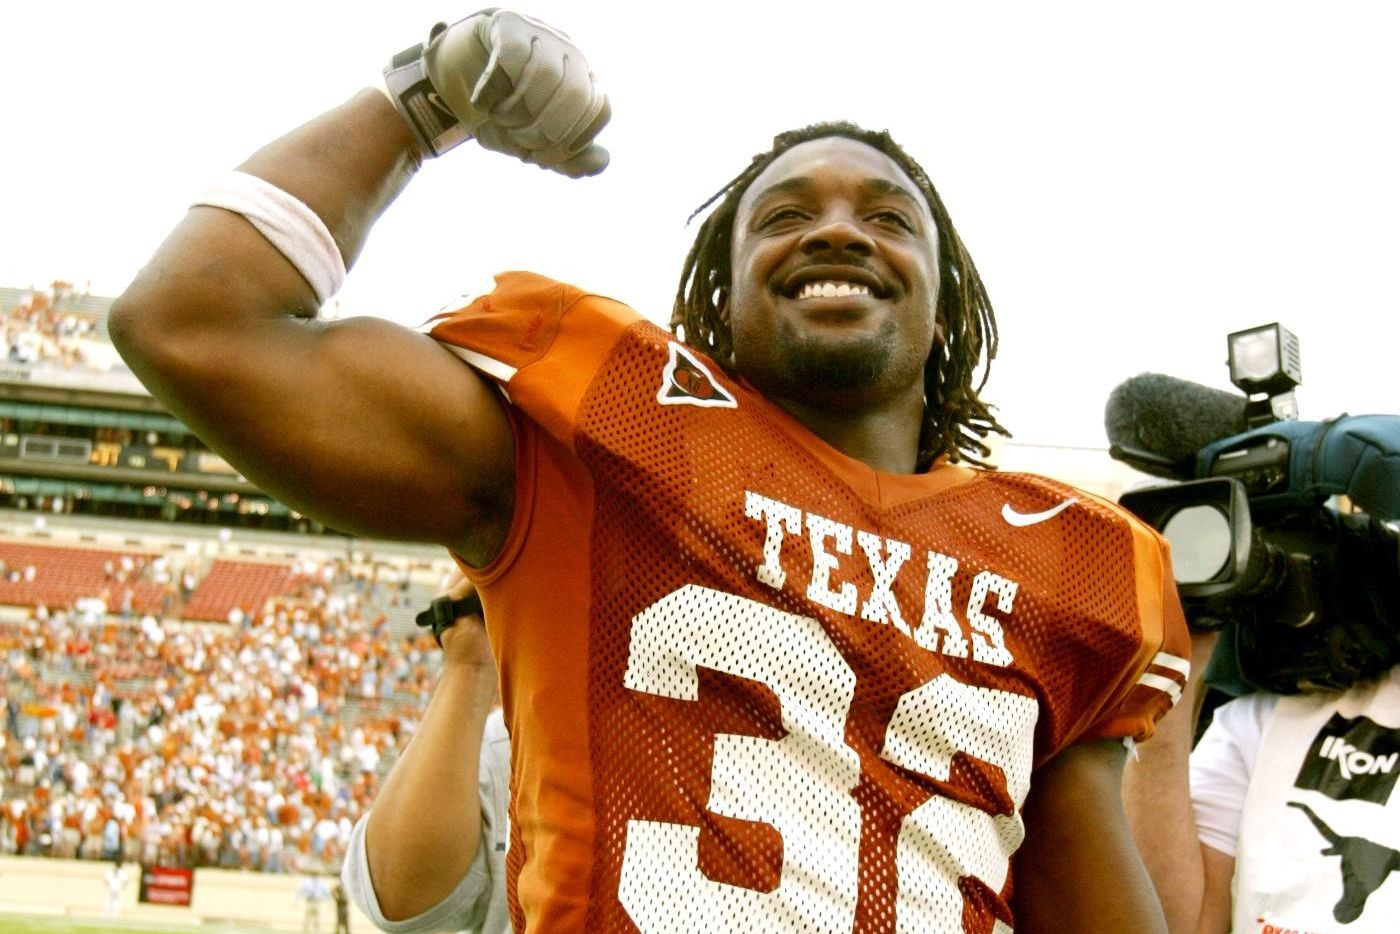 Austin, Texas - Texas RB Cedric Benson (32) makes muscles for Longhorn fans after Texas beat Nebraska 31-7 at Royal-Memorial Stadium Saturday.